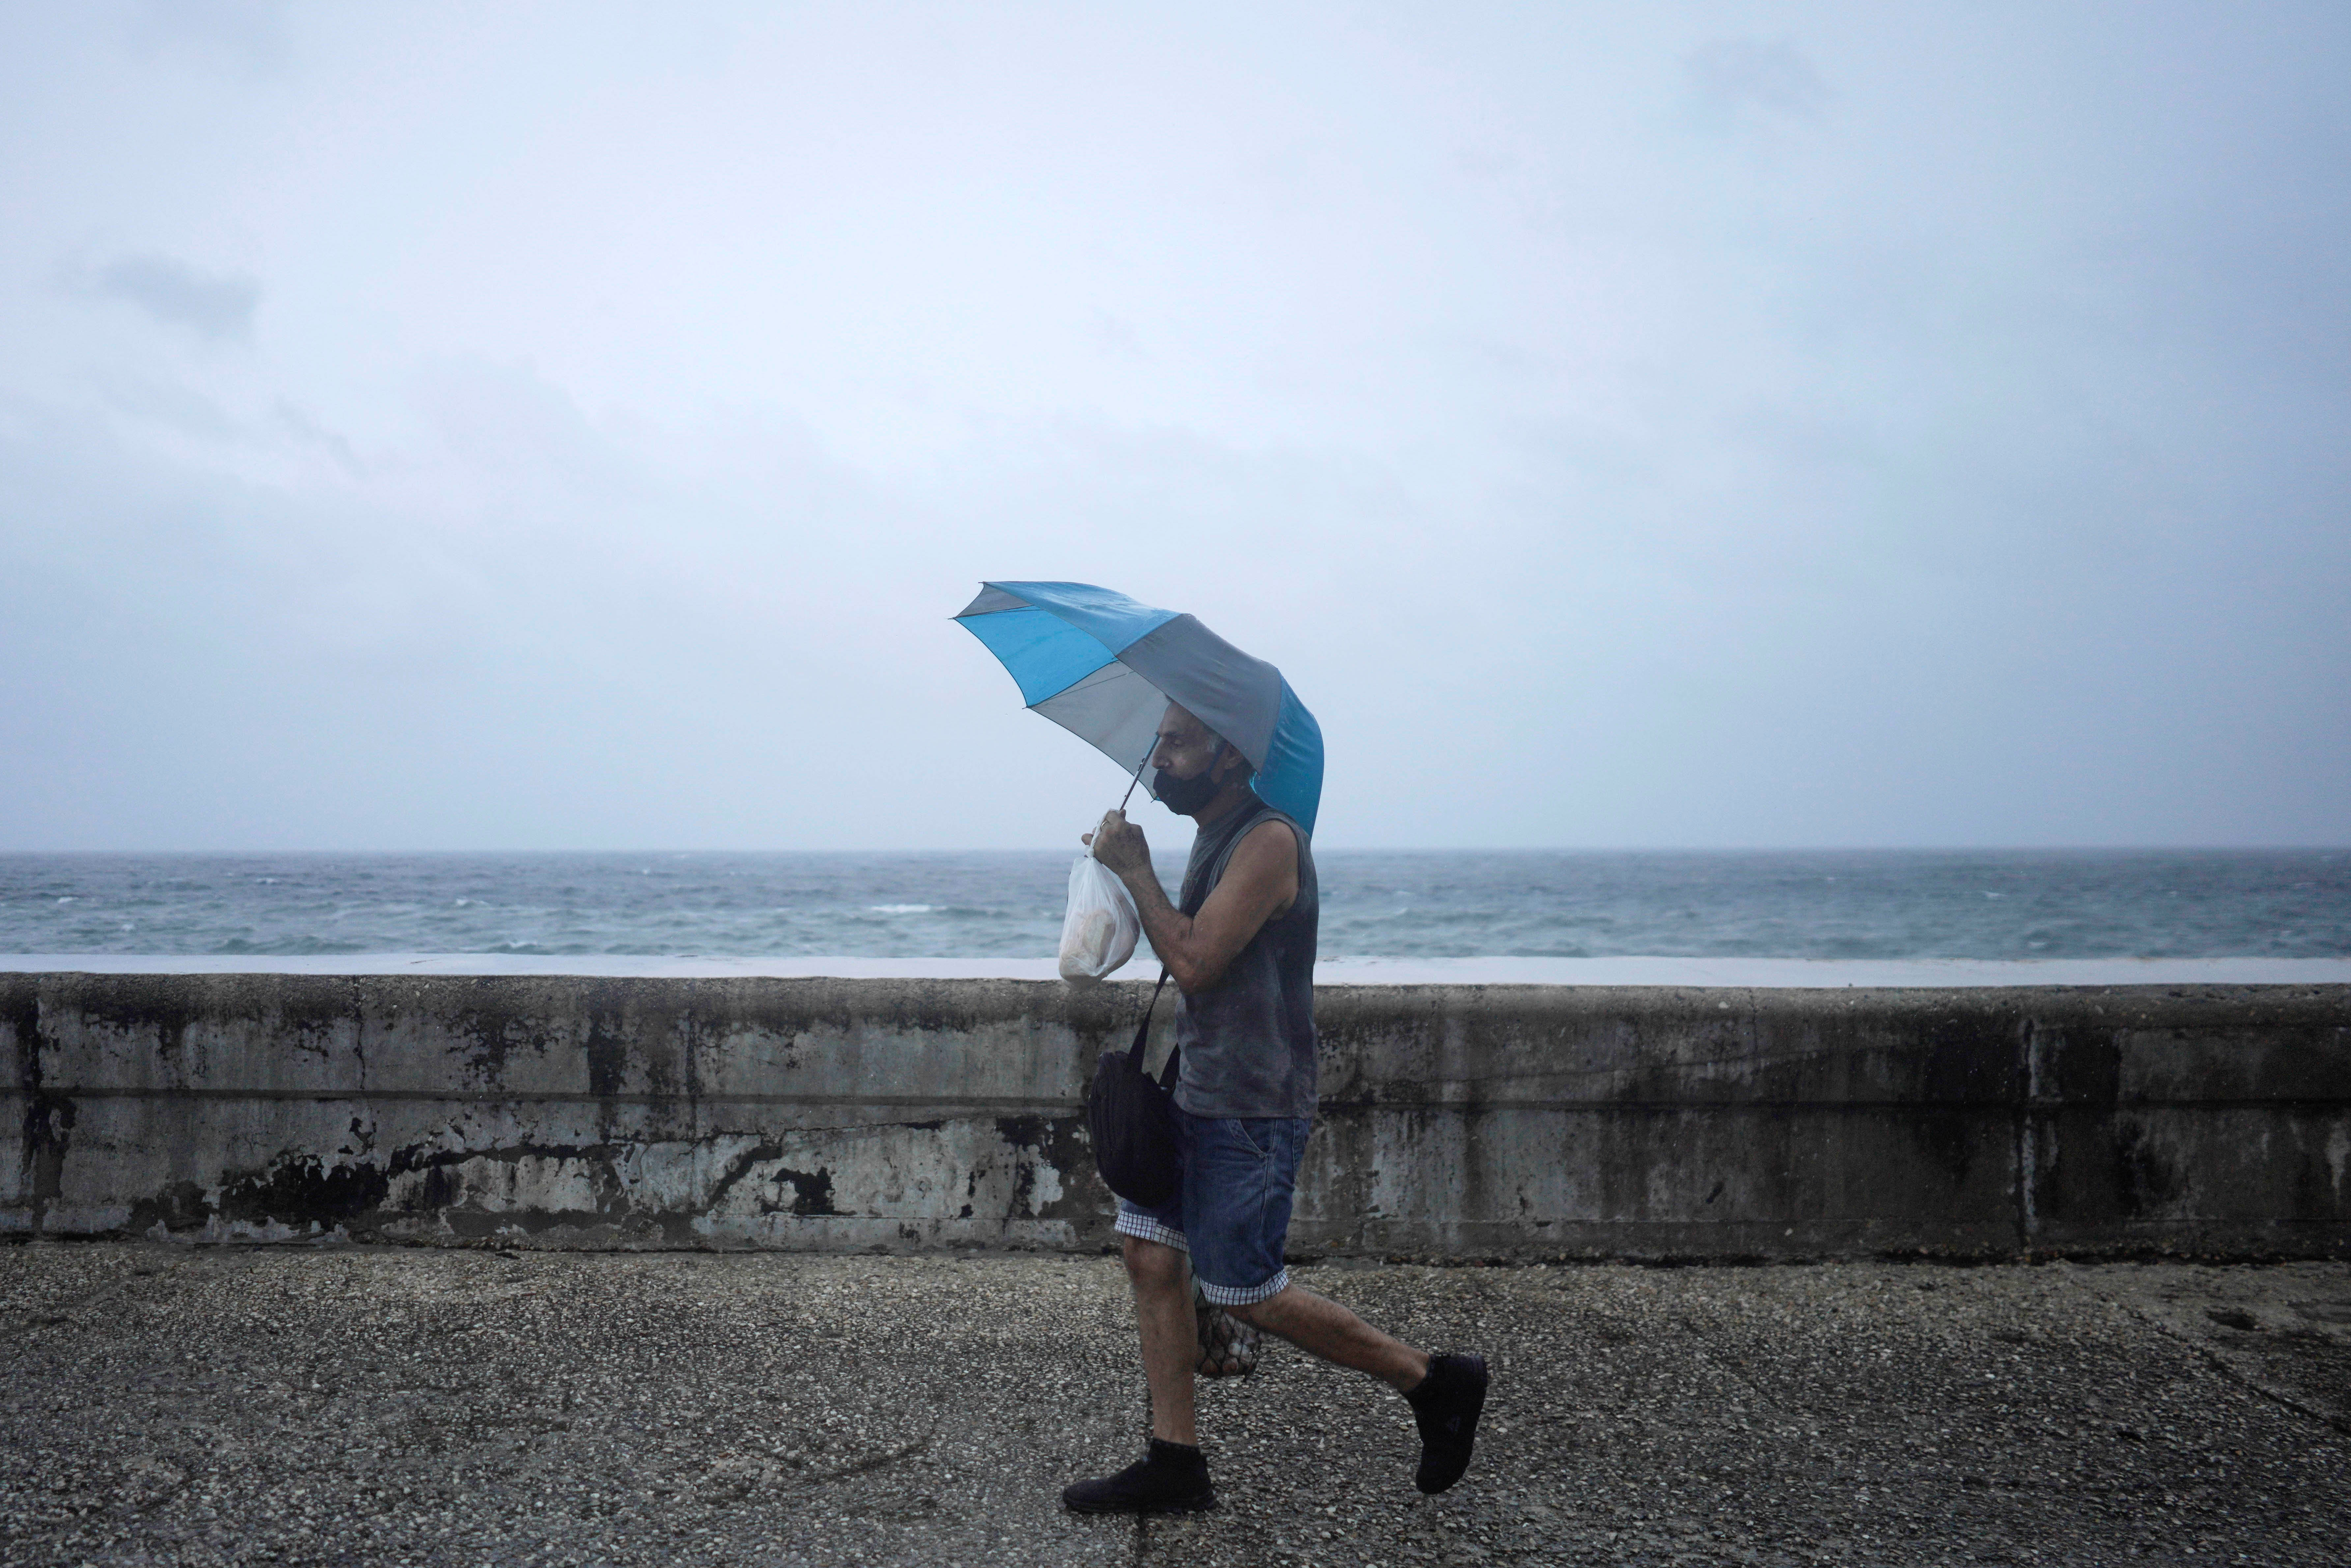 A man protects himself from wind and rain as he walks at the seafront Malecon while Hurricane Ida approaches the island, in Havana, Cuba, August 27, 2021. REUTERS/Alexandre Meneghini